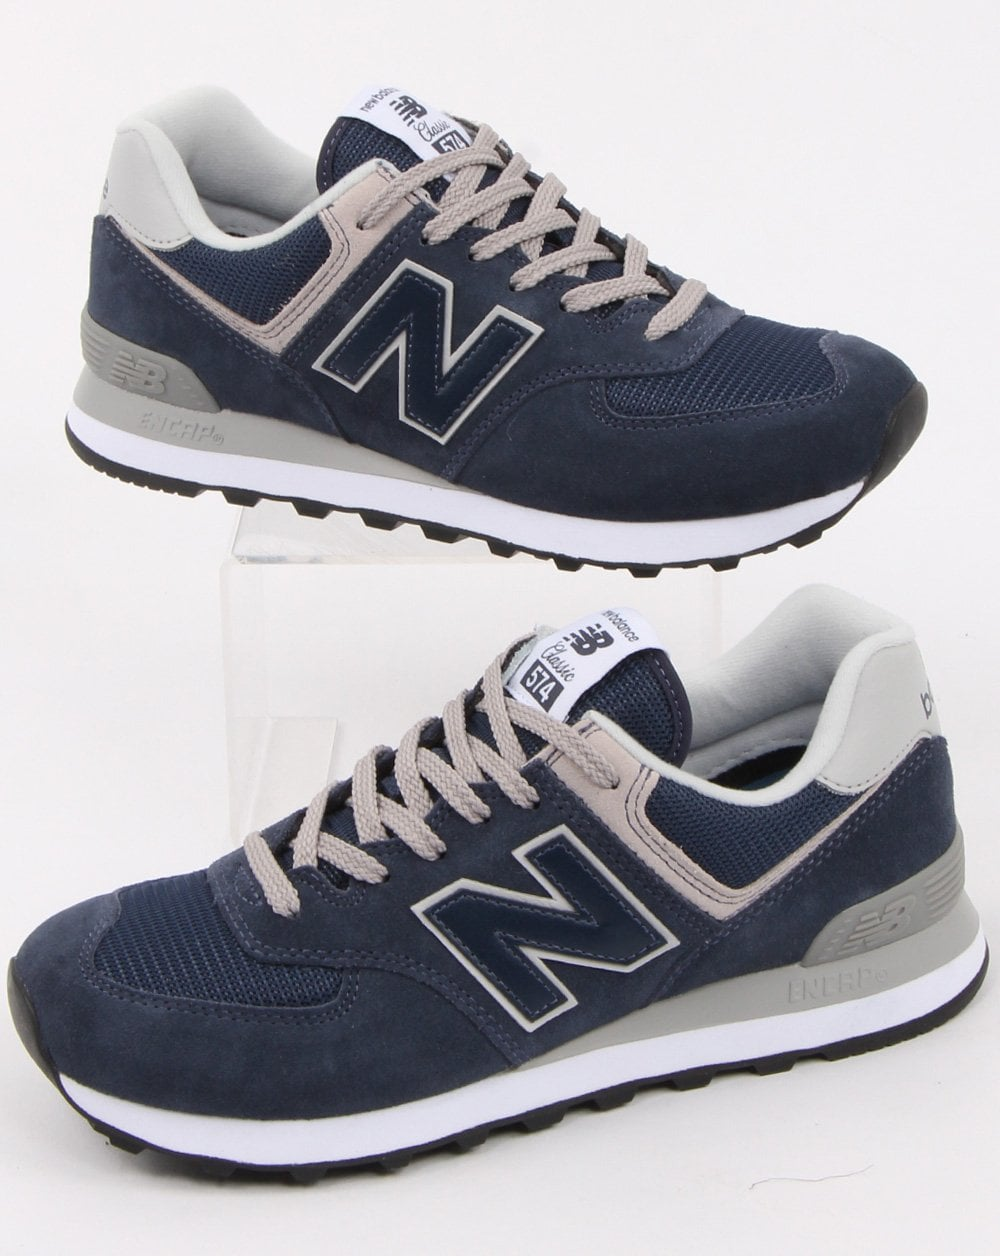 new arrival 5602a 9cb2c New Balance 574 Trainer Navy